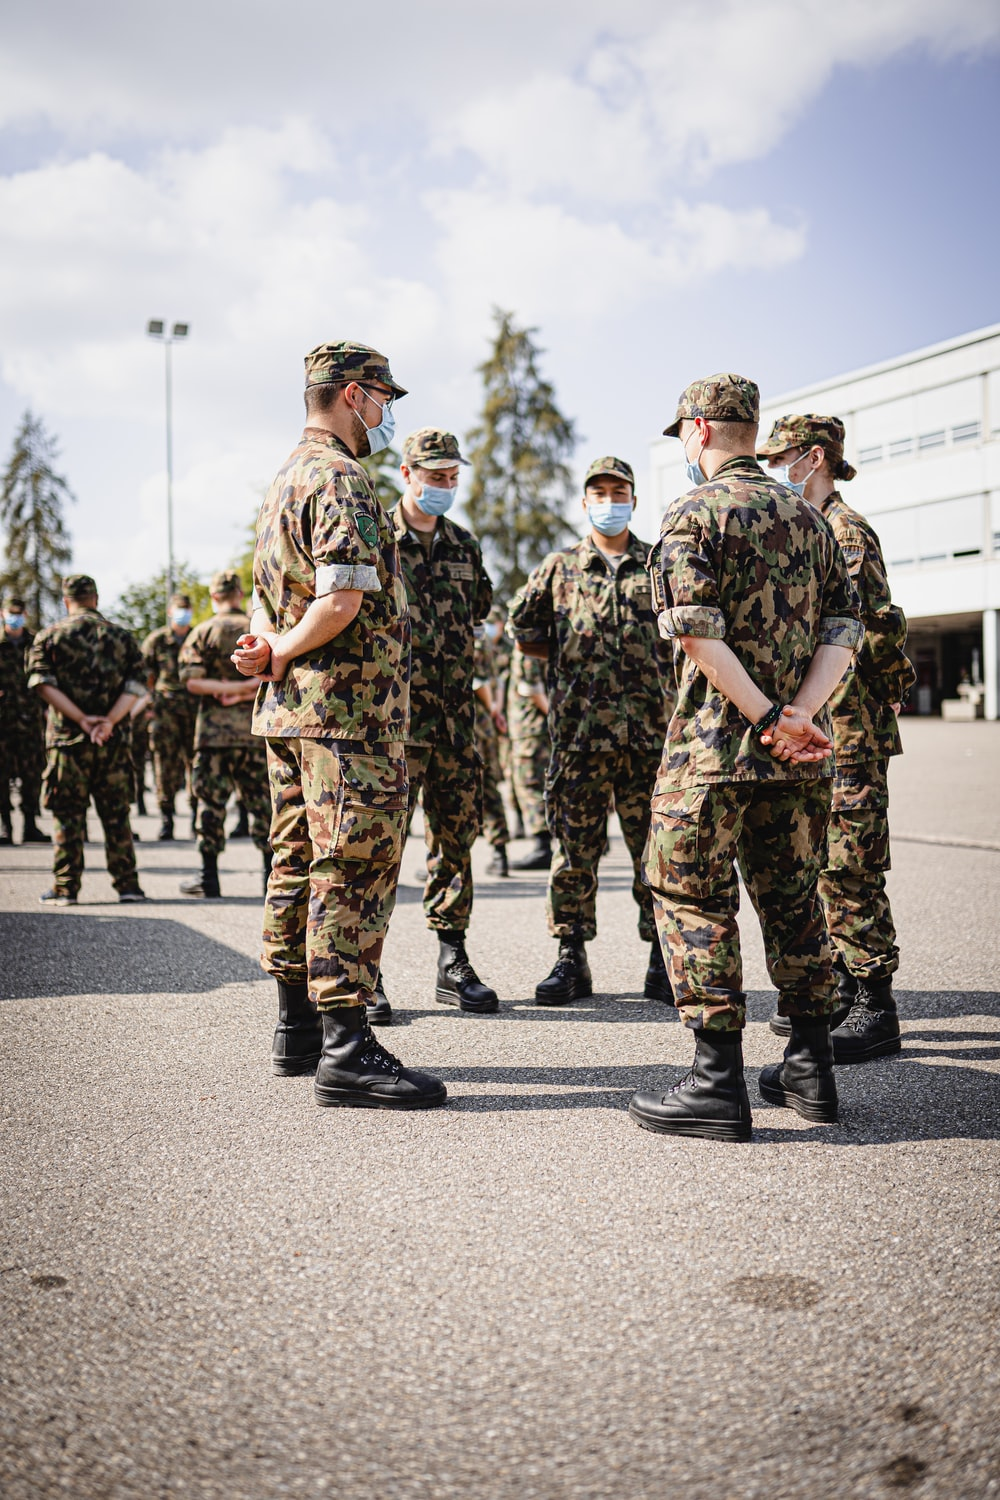 men in green and brown camouflage uniform standing on road during daytime